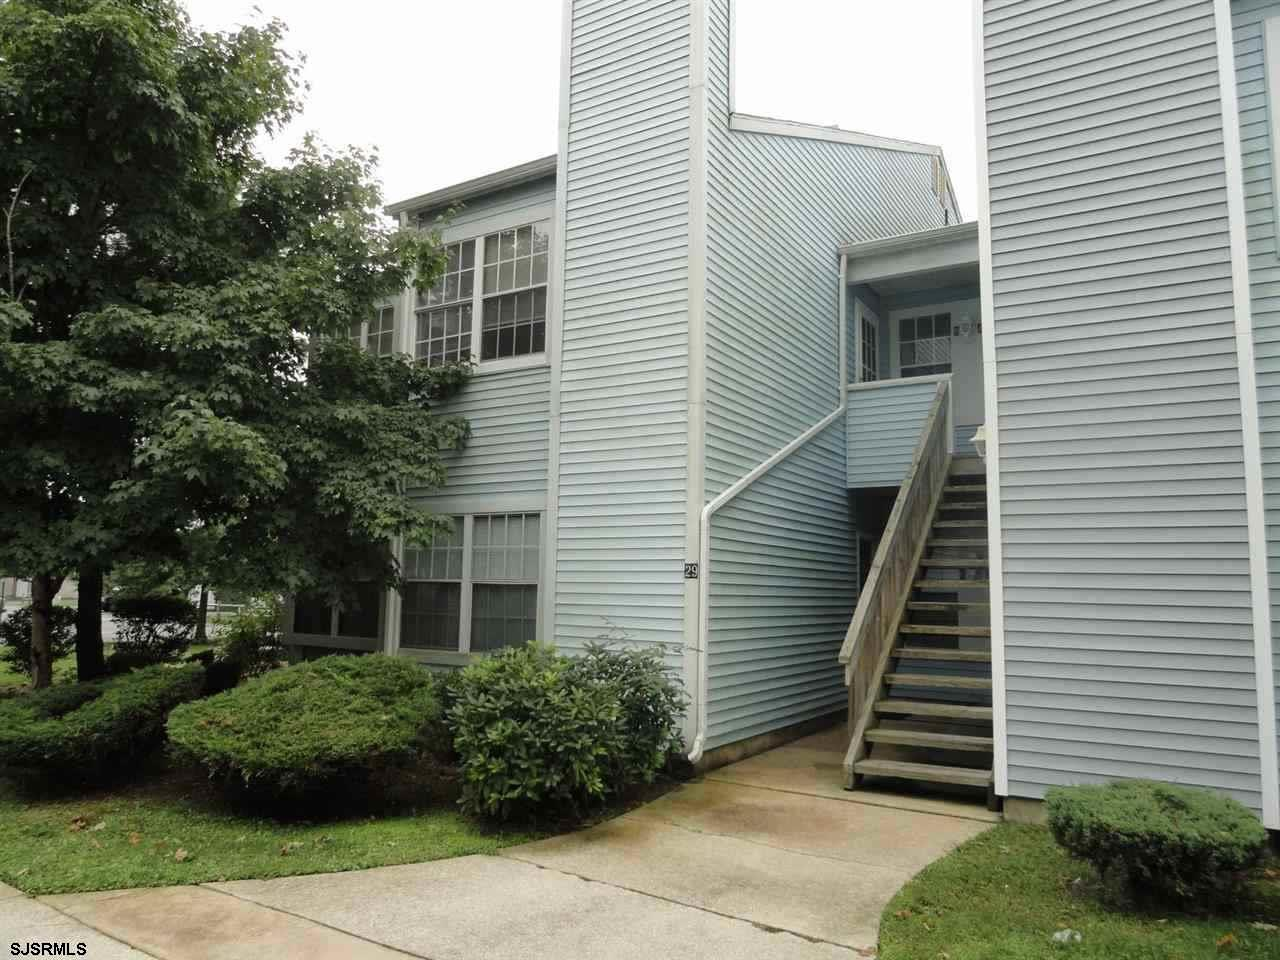 Beautiful 2nd fl condo with cathedral ceilings. If you like natural sunlight then this is the home for you. Home features Newer gas heat. central air. Bedroom w/walk in closet. Kitchen with room for a table. This unit is larger than most.  Washer and dryer included in the home.  This is an End unit. Conveniently located across from the Smithville Village. Close to shopping and transportation,min to casinos and beaches. Perfect for a vacation get away. Enjoy all the Smithville amenities, Gym,pools,clubhouse,tennis, walking/bike paths Like a vacation  everyday. NTN credit check  and security deposit required.